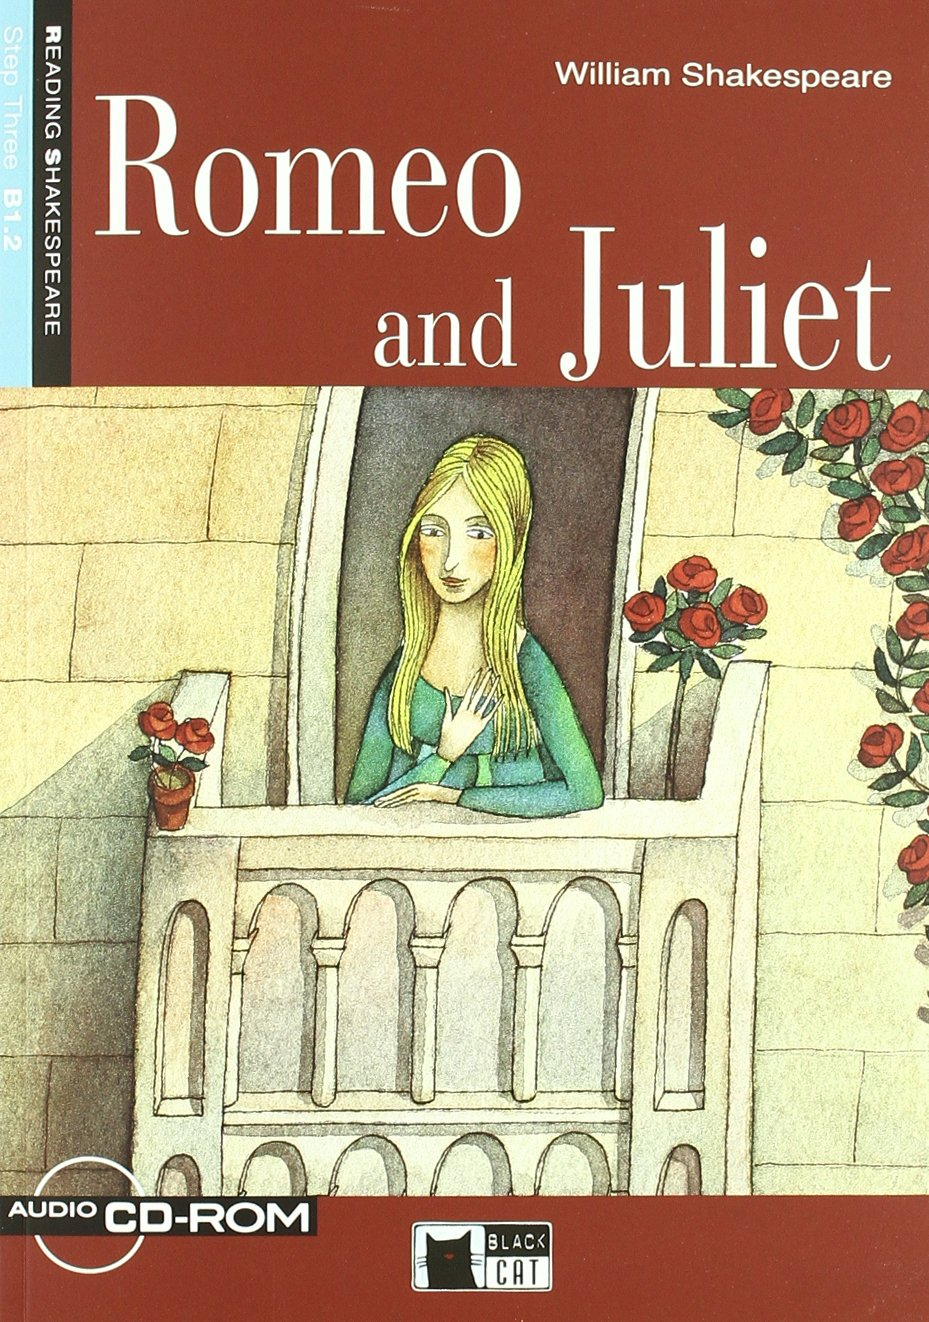 Romeo and Juliet (+ CD-ROM)